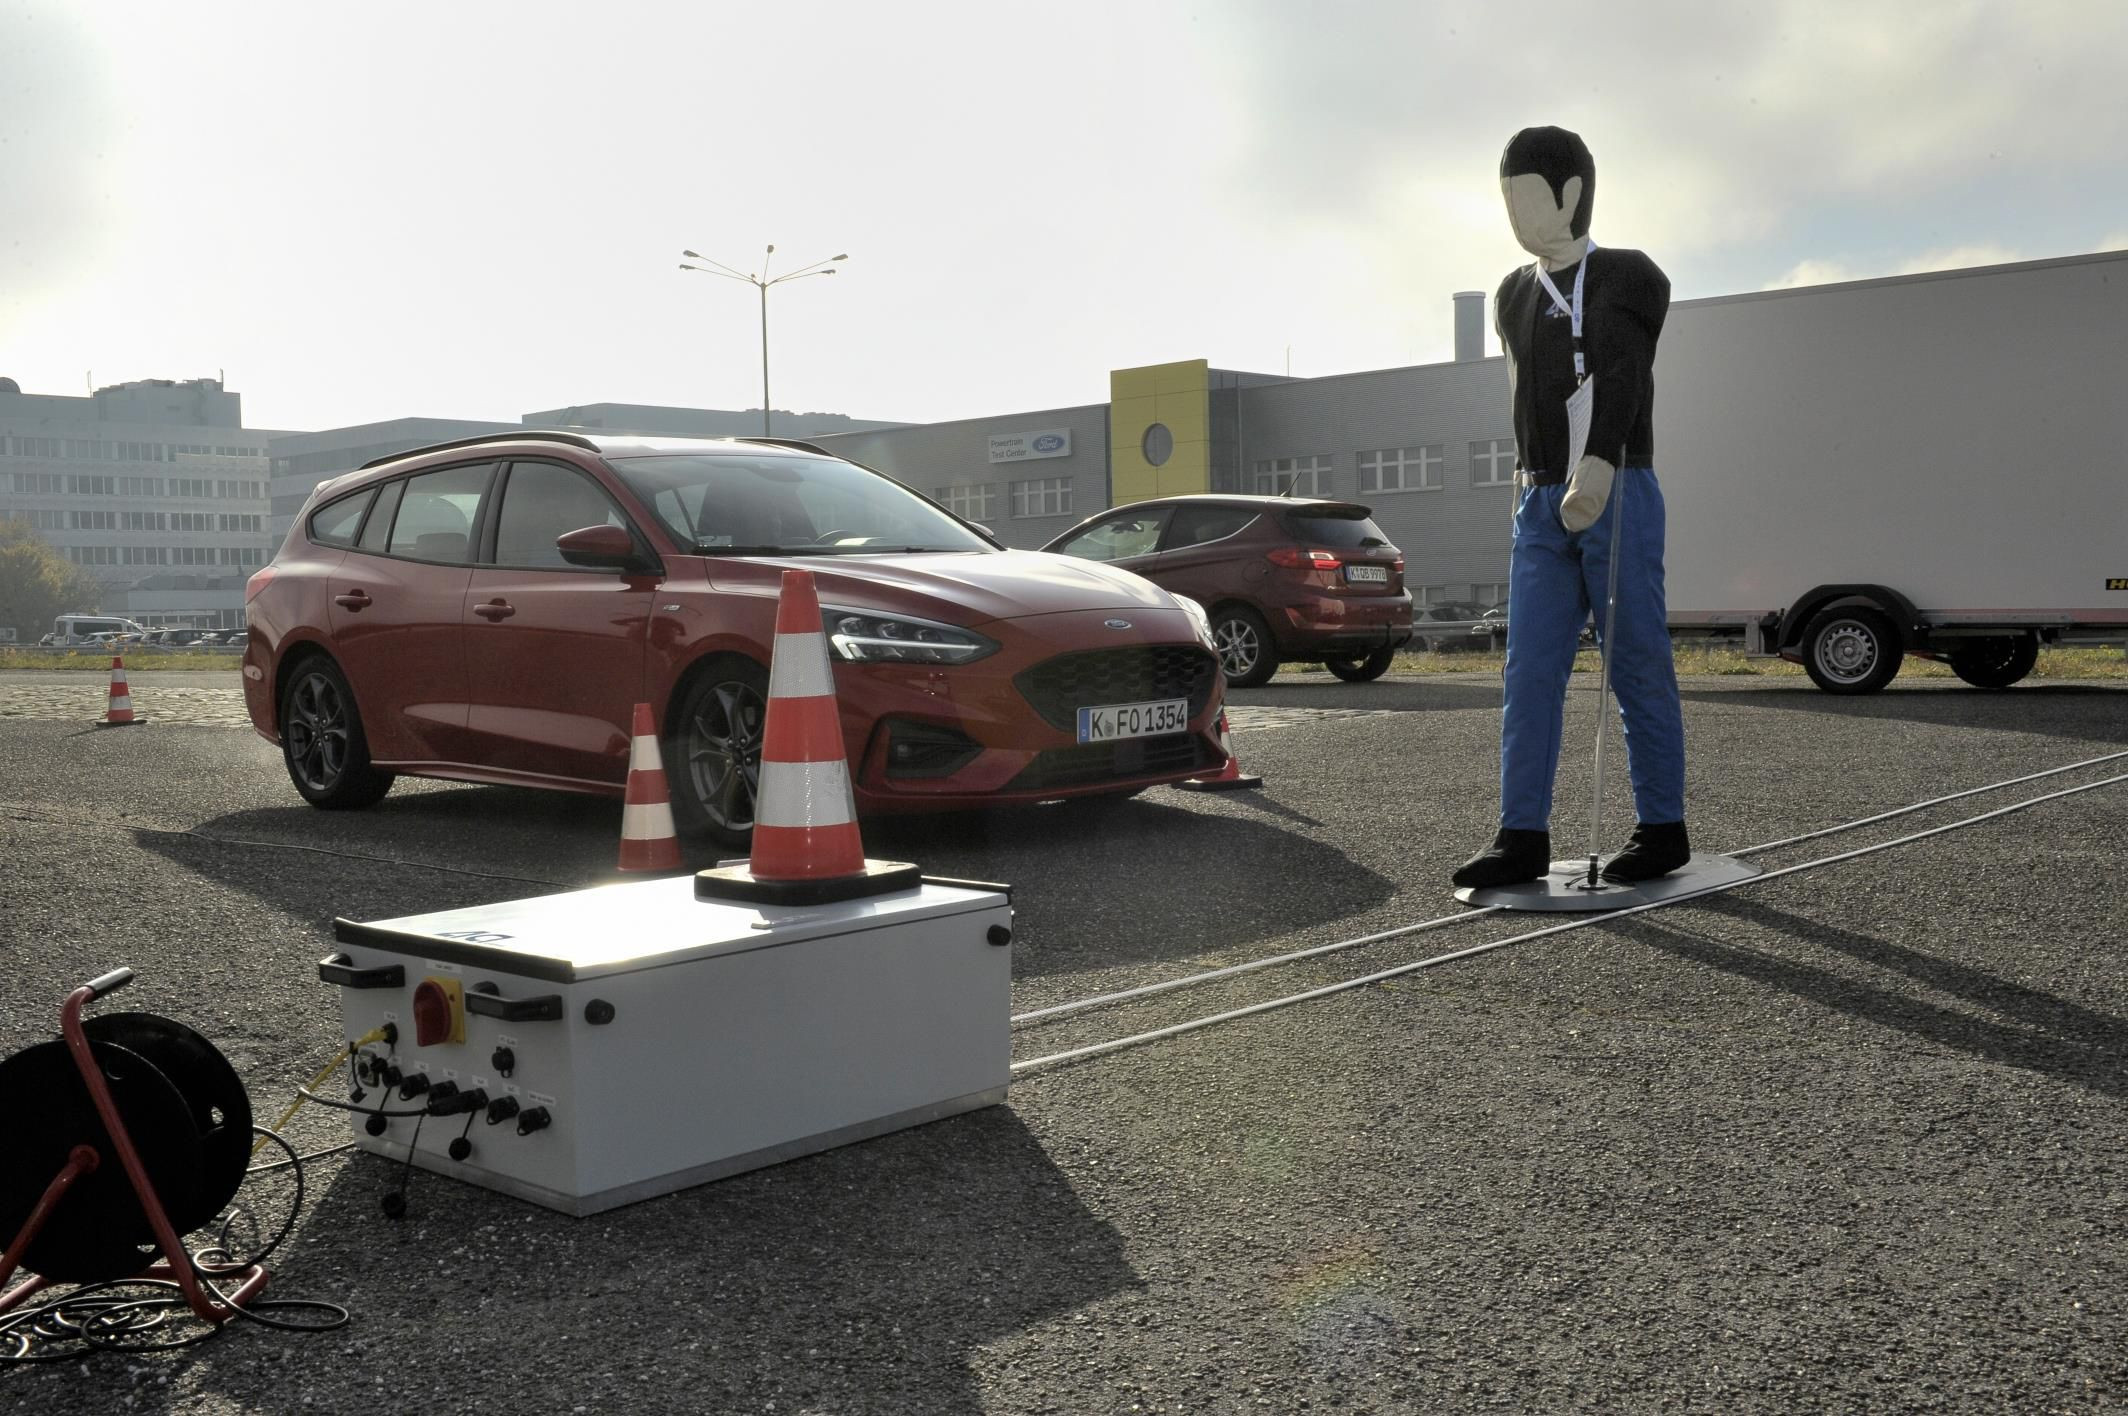 Dummy pedestrian walking in front of car for testing